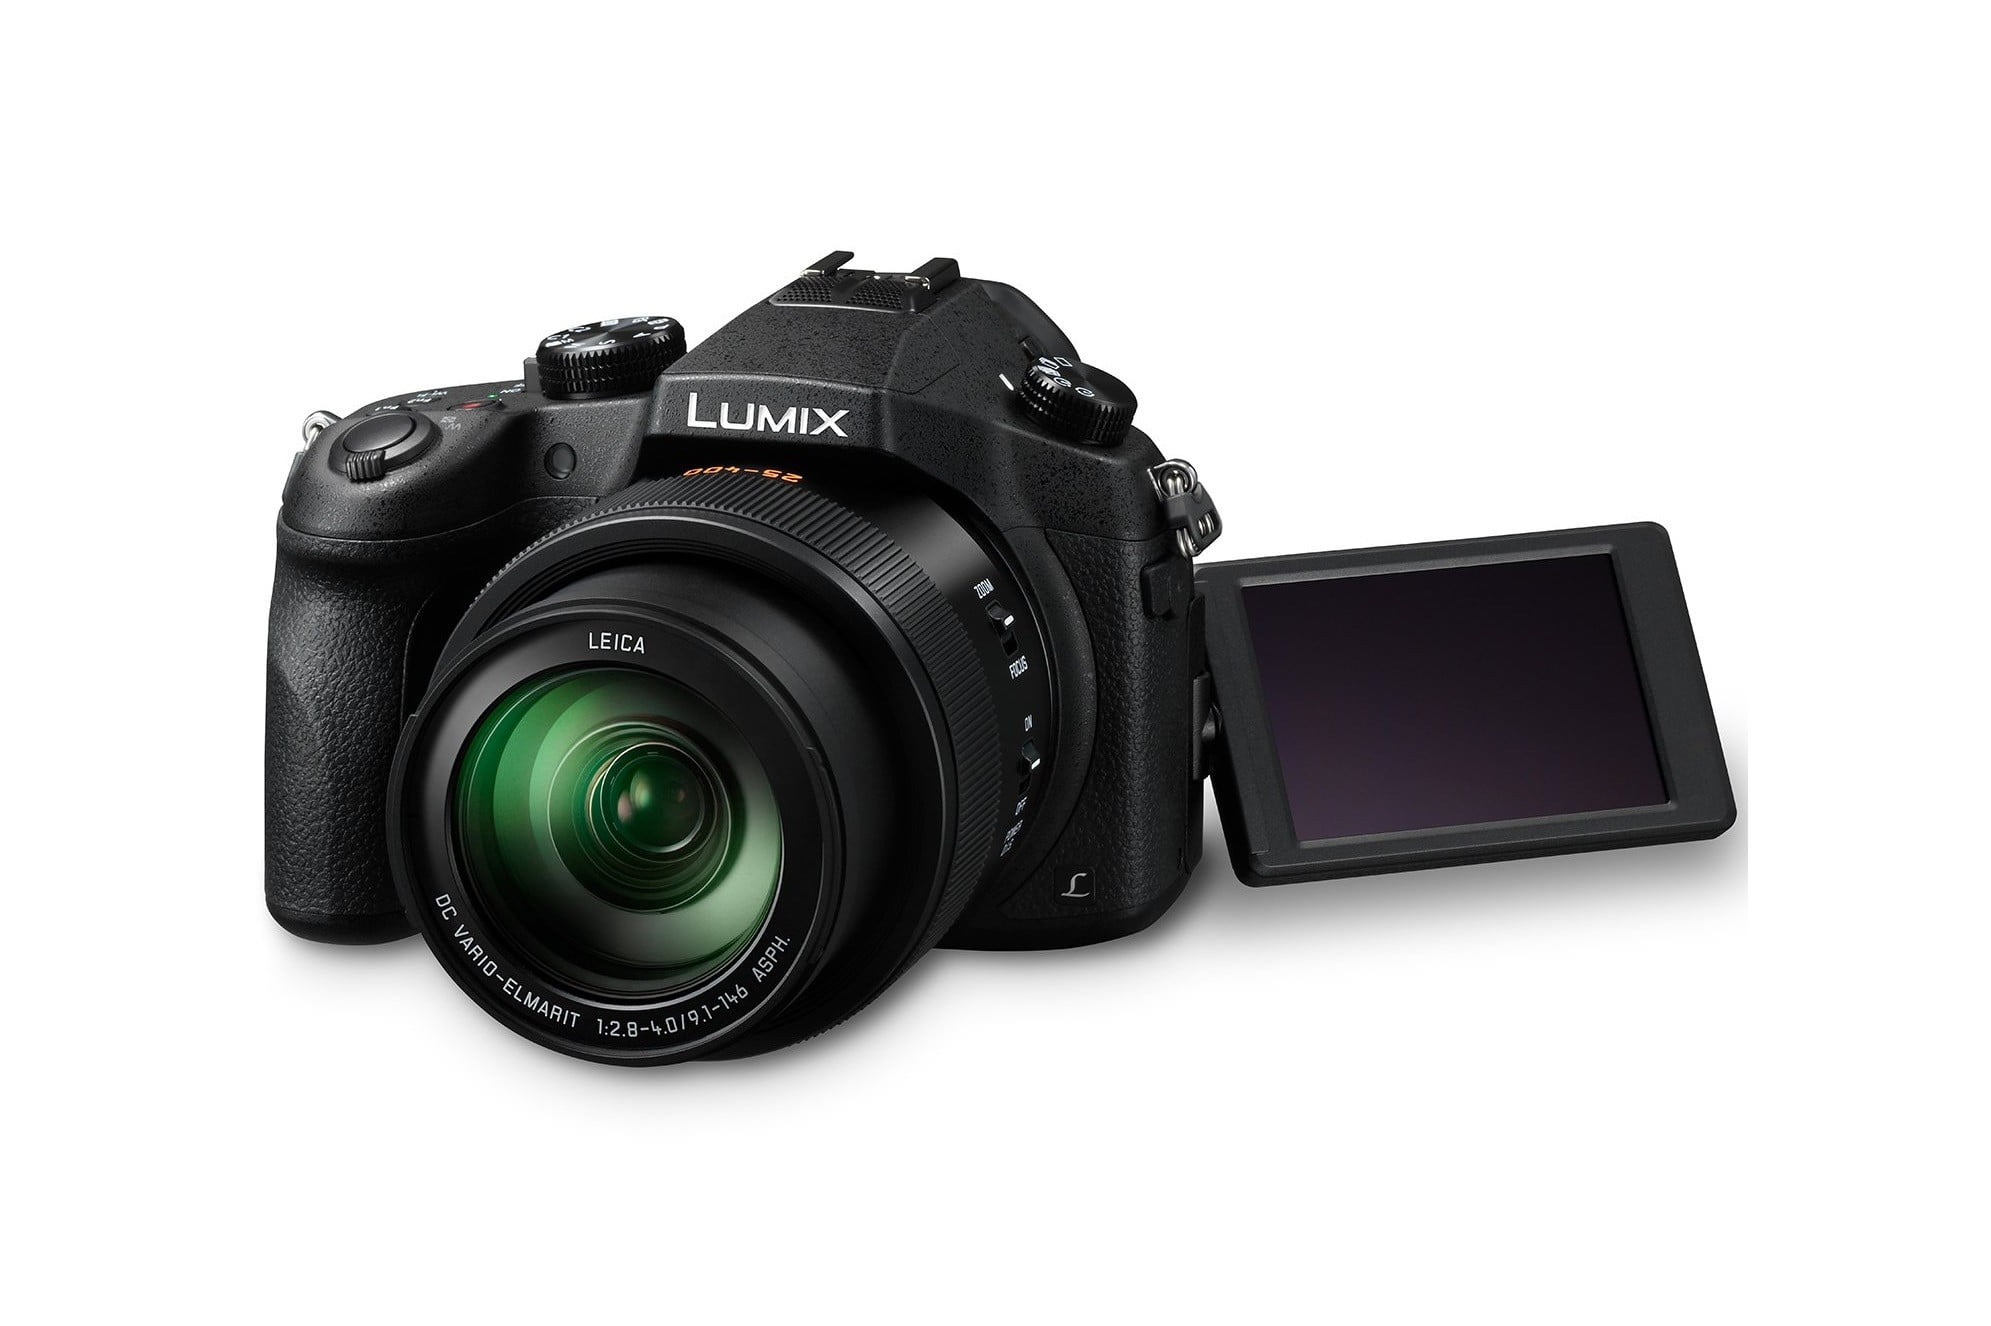 Capture stunning photos with this Panasonic camera for $302 less on Amazon